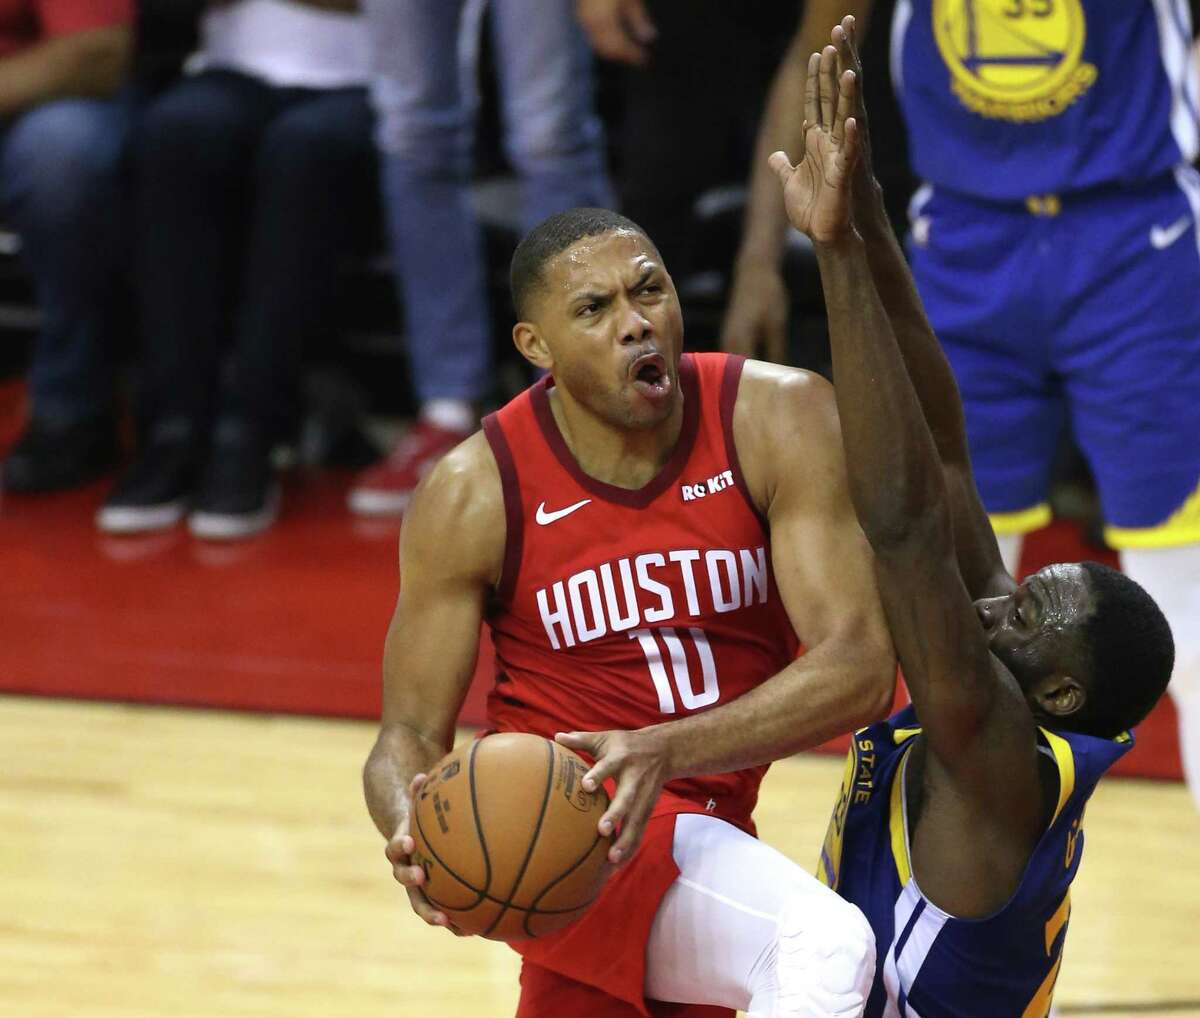 Rockets guard Eric Gordon (10) drives to the basket against Golden State Warriors forward Draymond Green (23) during the second half